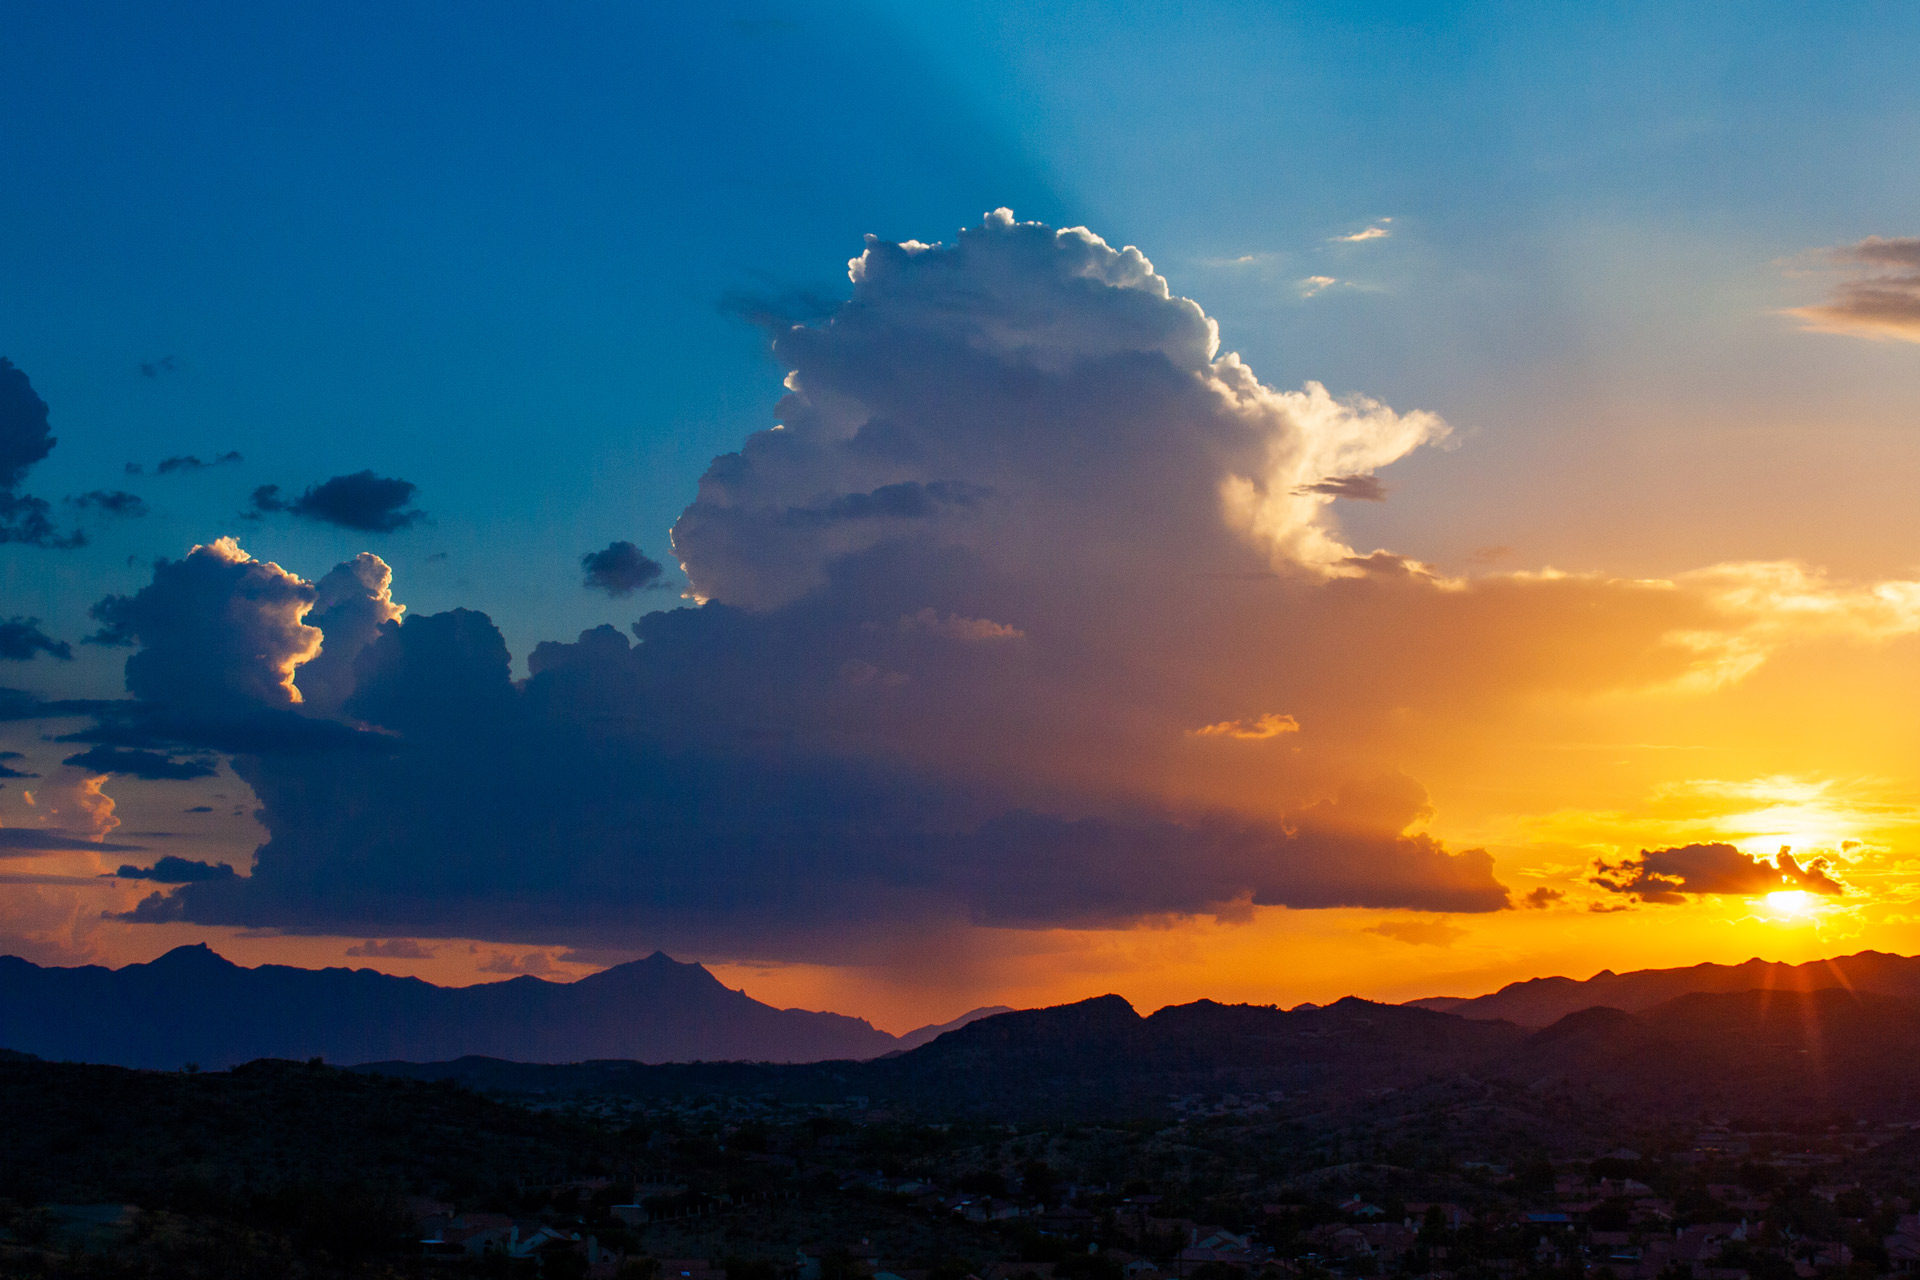 A thunderstorm to the west of Phoenix is illuminated by the setting sun